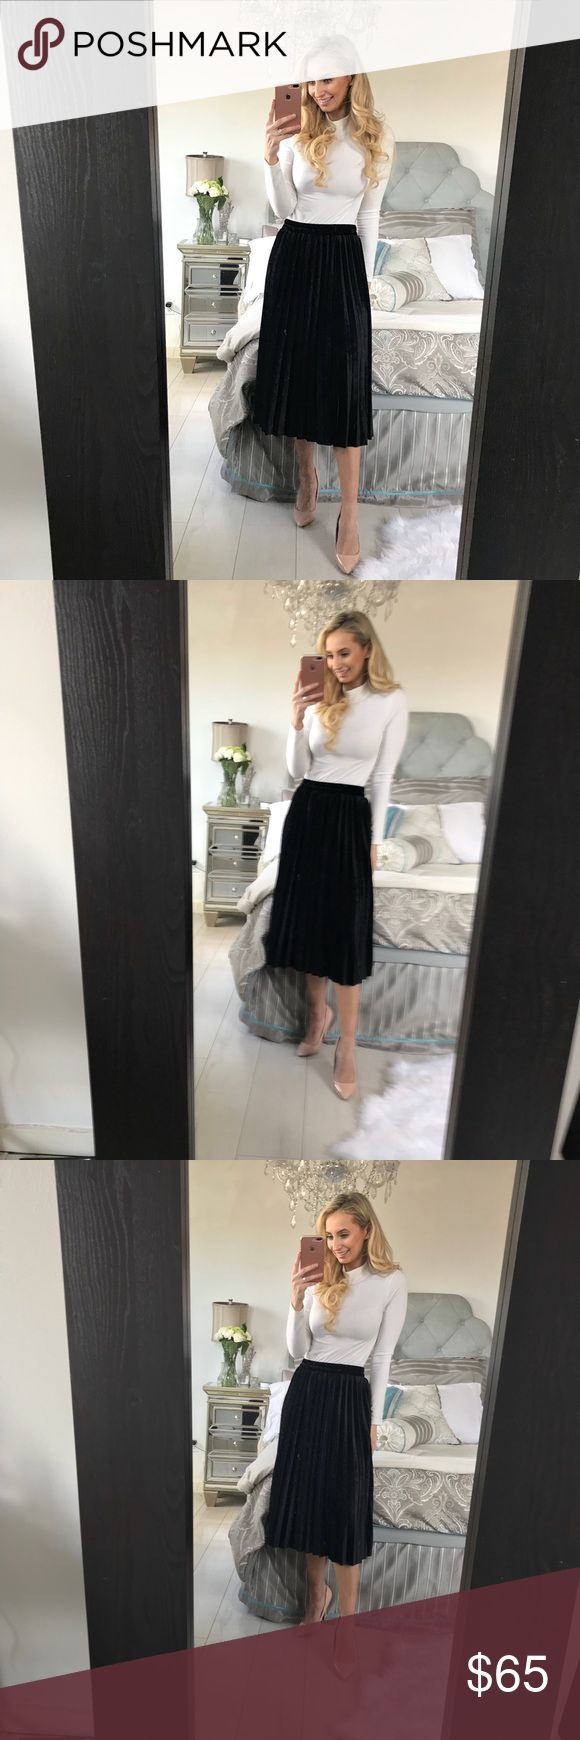 Black Velvet Pleated Skirt This skirt is the fashion trend for 2018, A-line wonder boast, midi-length and perfect for Spring! Material: Cotton, Polyester Fabric: Velvet Waistline: Empire Size            Waist (Width)     Waist (Relaxed)   Skirt Length One Size    22                         36                       28.7 Little Pearls of Life Skirts Midi